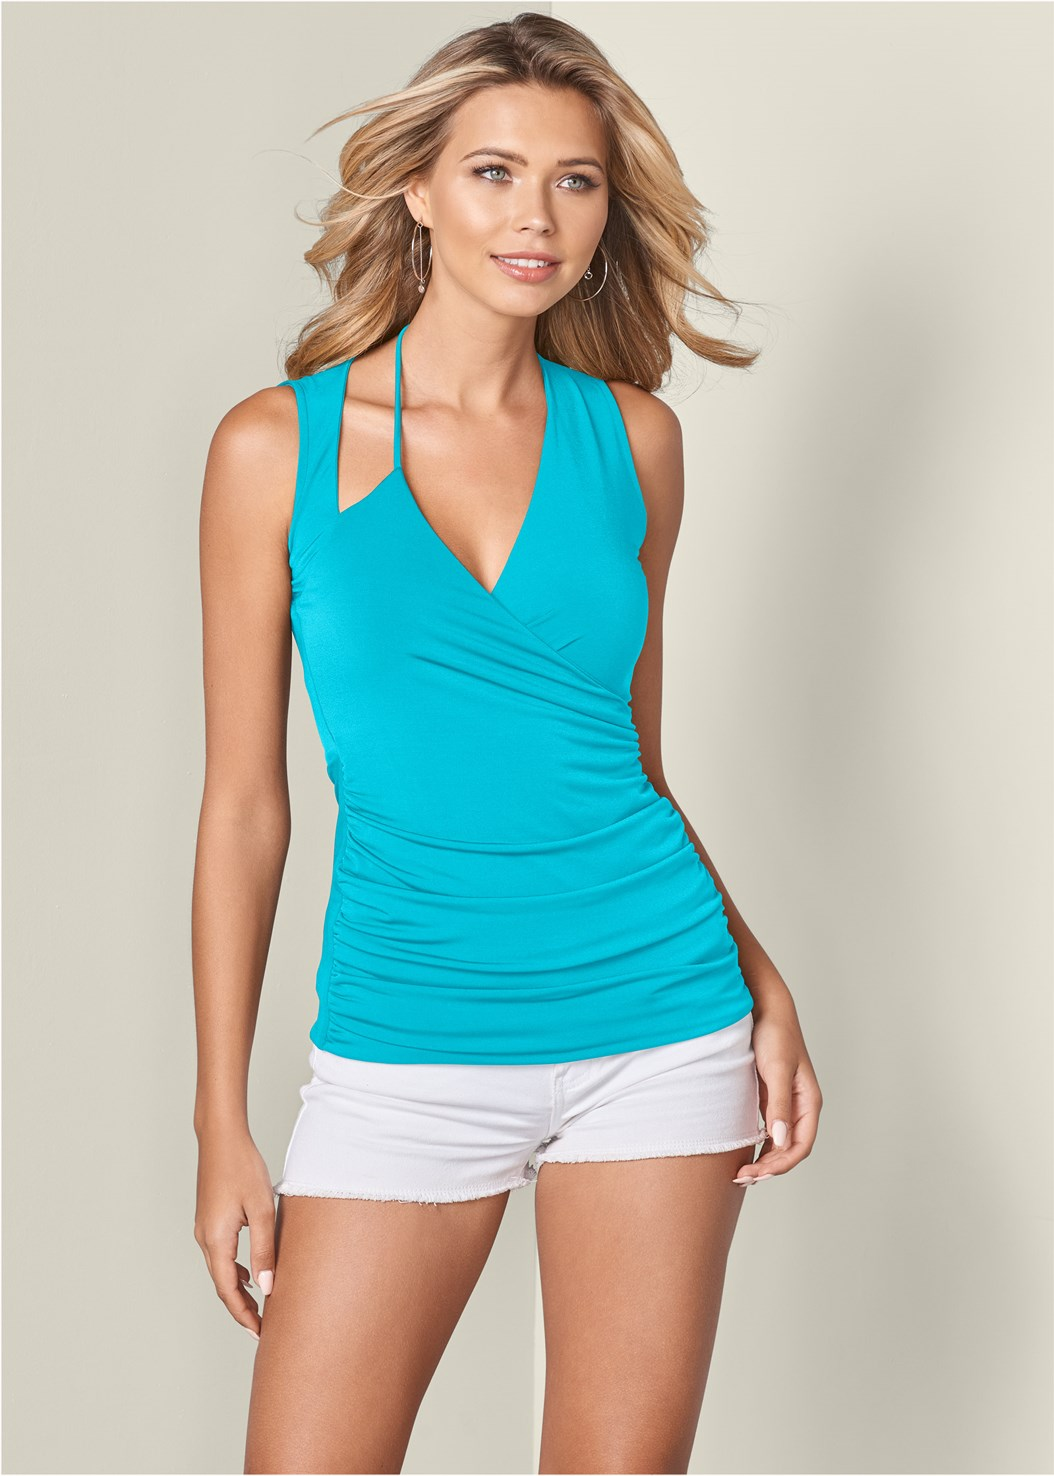 Ruched Detail Surplice Top,Frayed Cut Off Jean Shorts